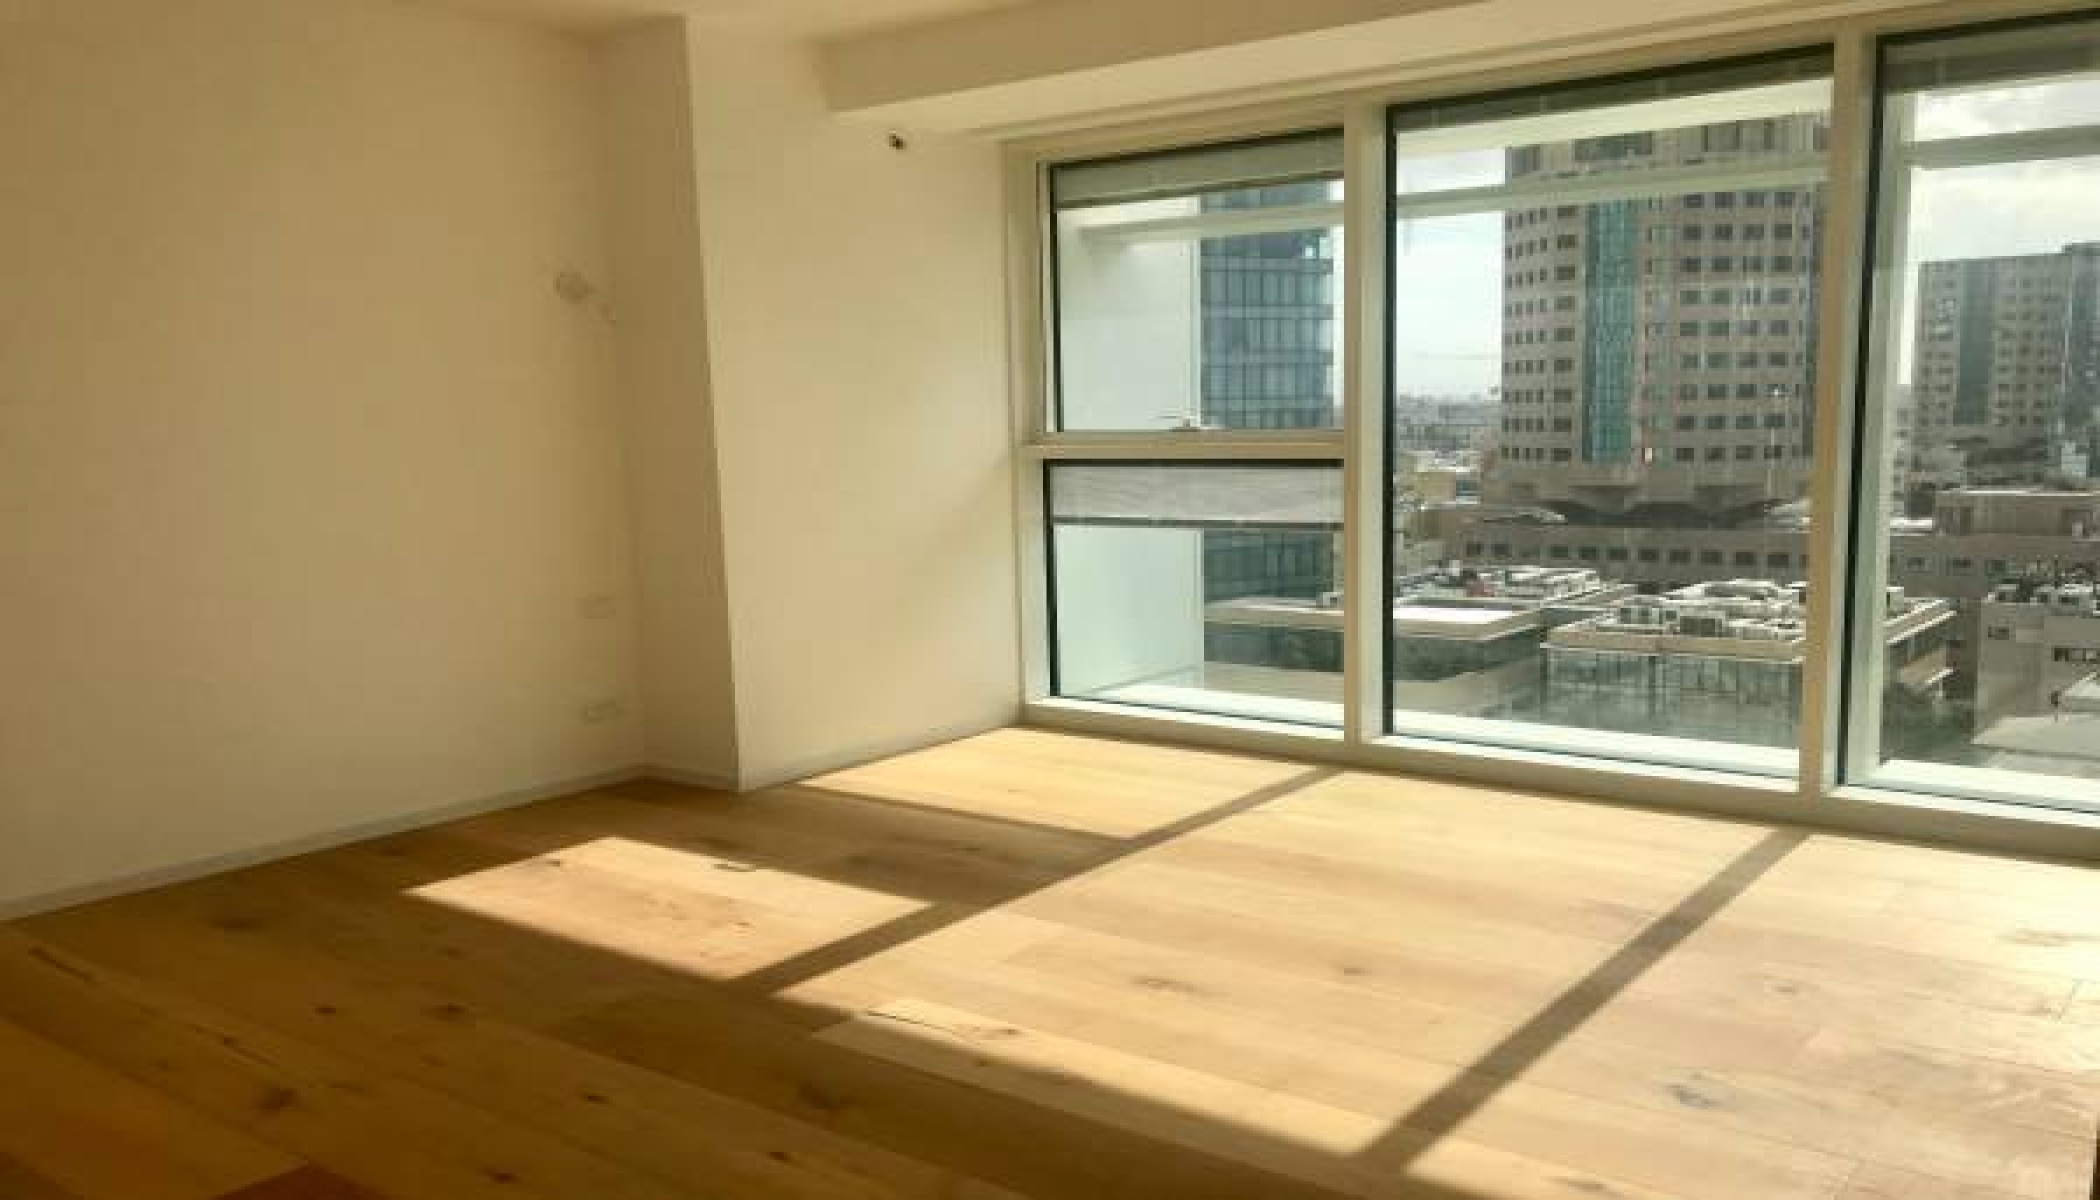 TEL AVIV, 3.5 Bedrooms Bedrooms, 4.5 Rooms Rooms,2.5 BathroomsBathrooms,Apartment,SALE TEL AVIV,9,1062